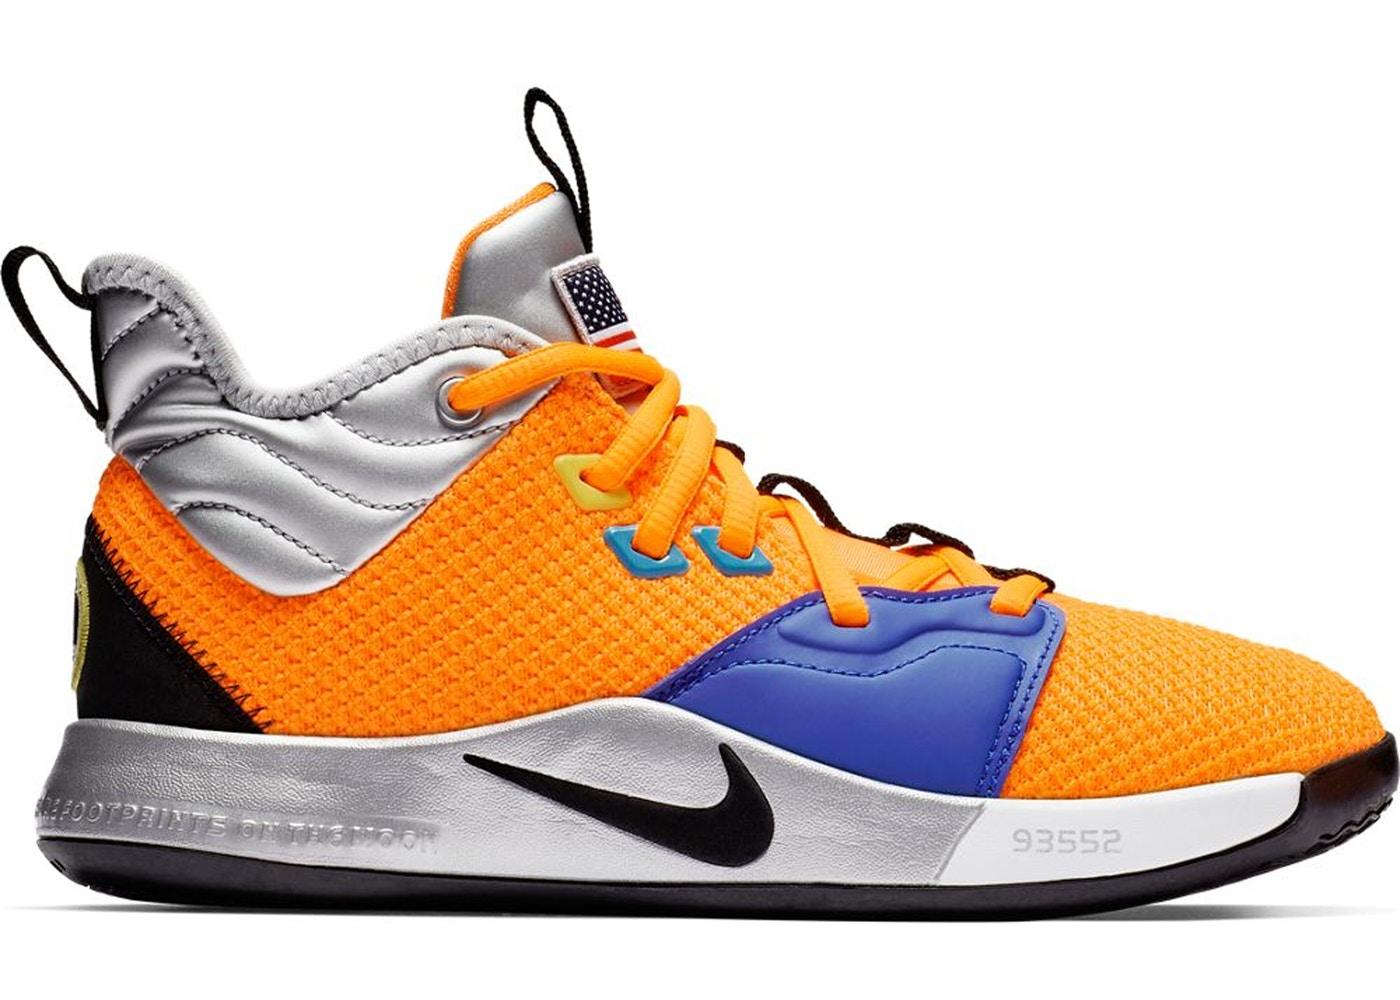 save off 1d847 2fefc Nike Pg Images - Reverse Search